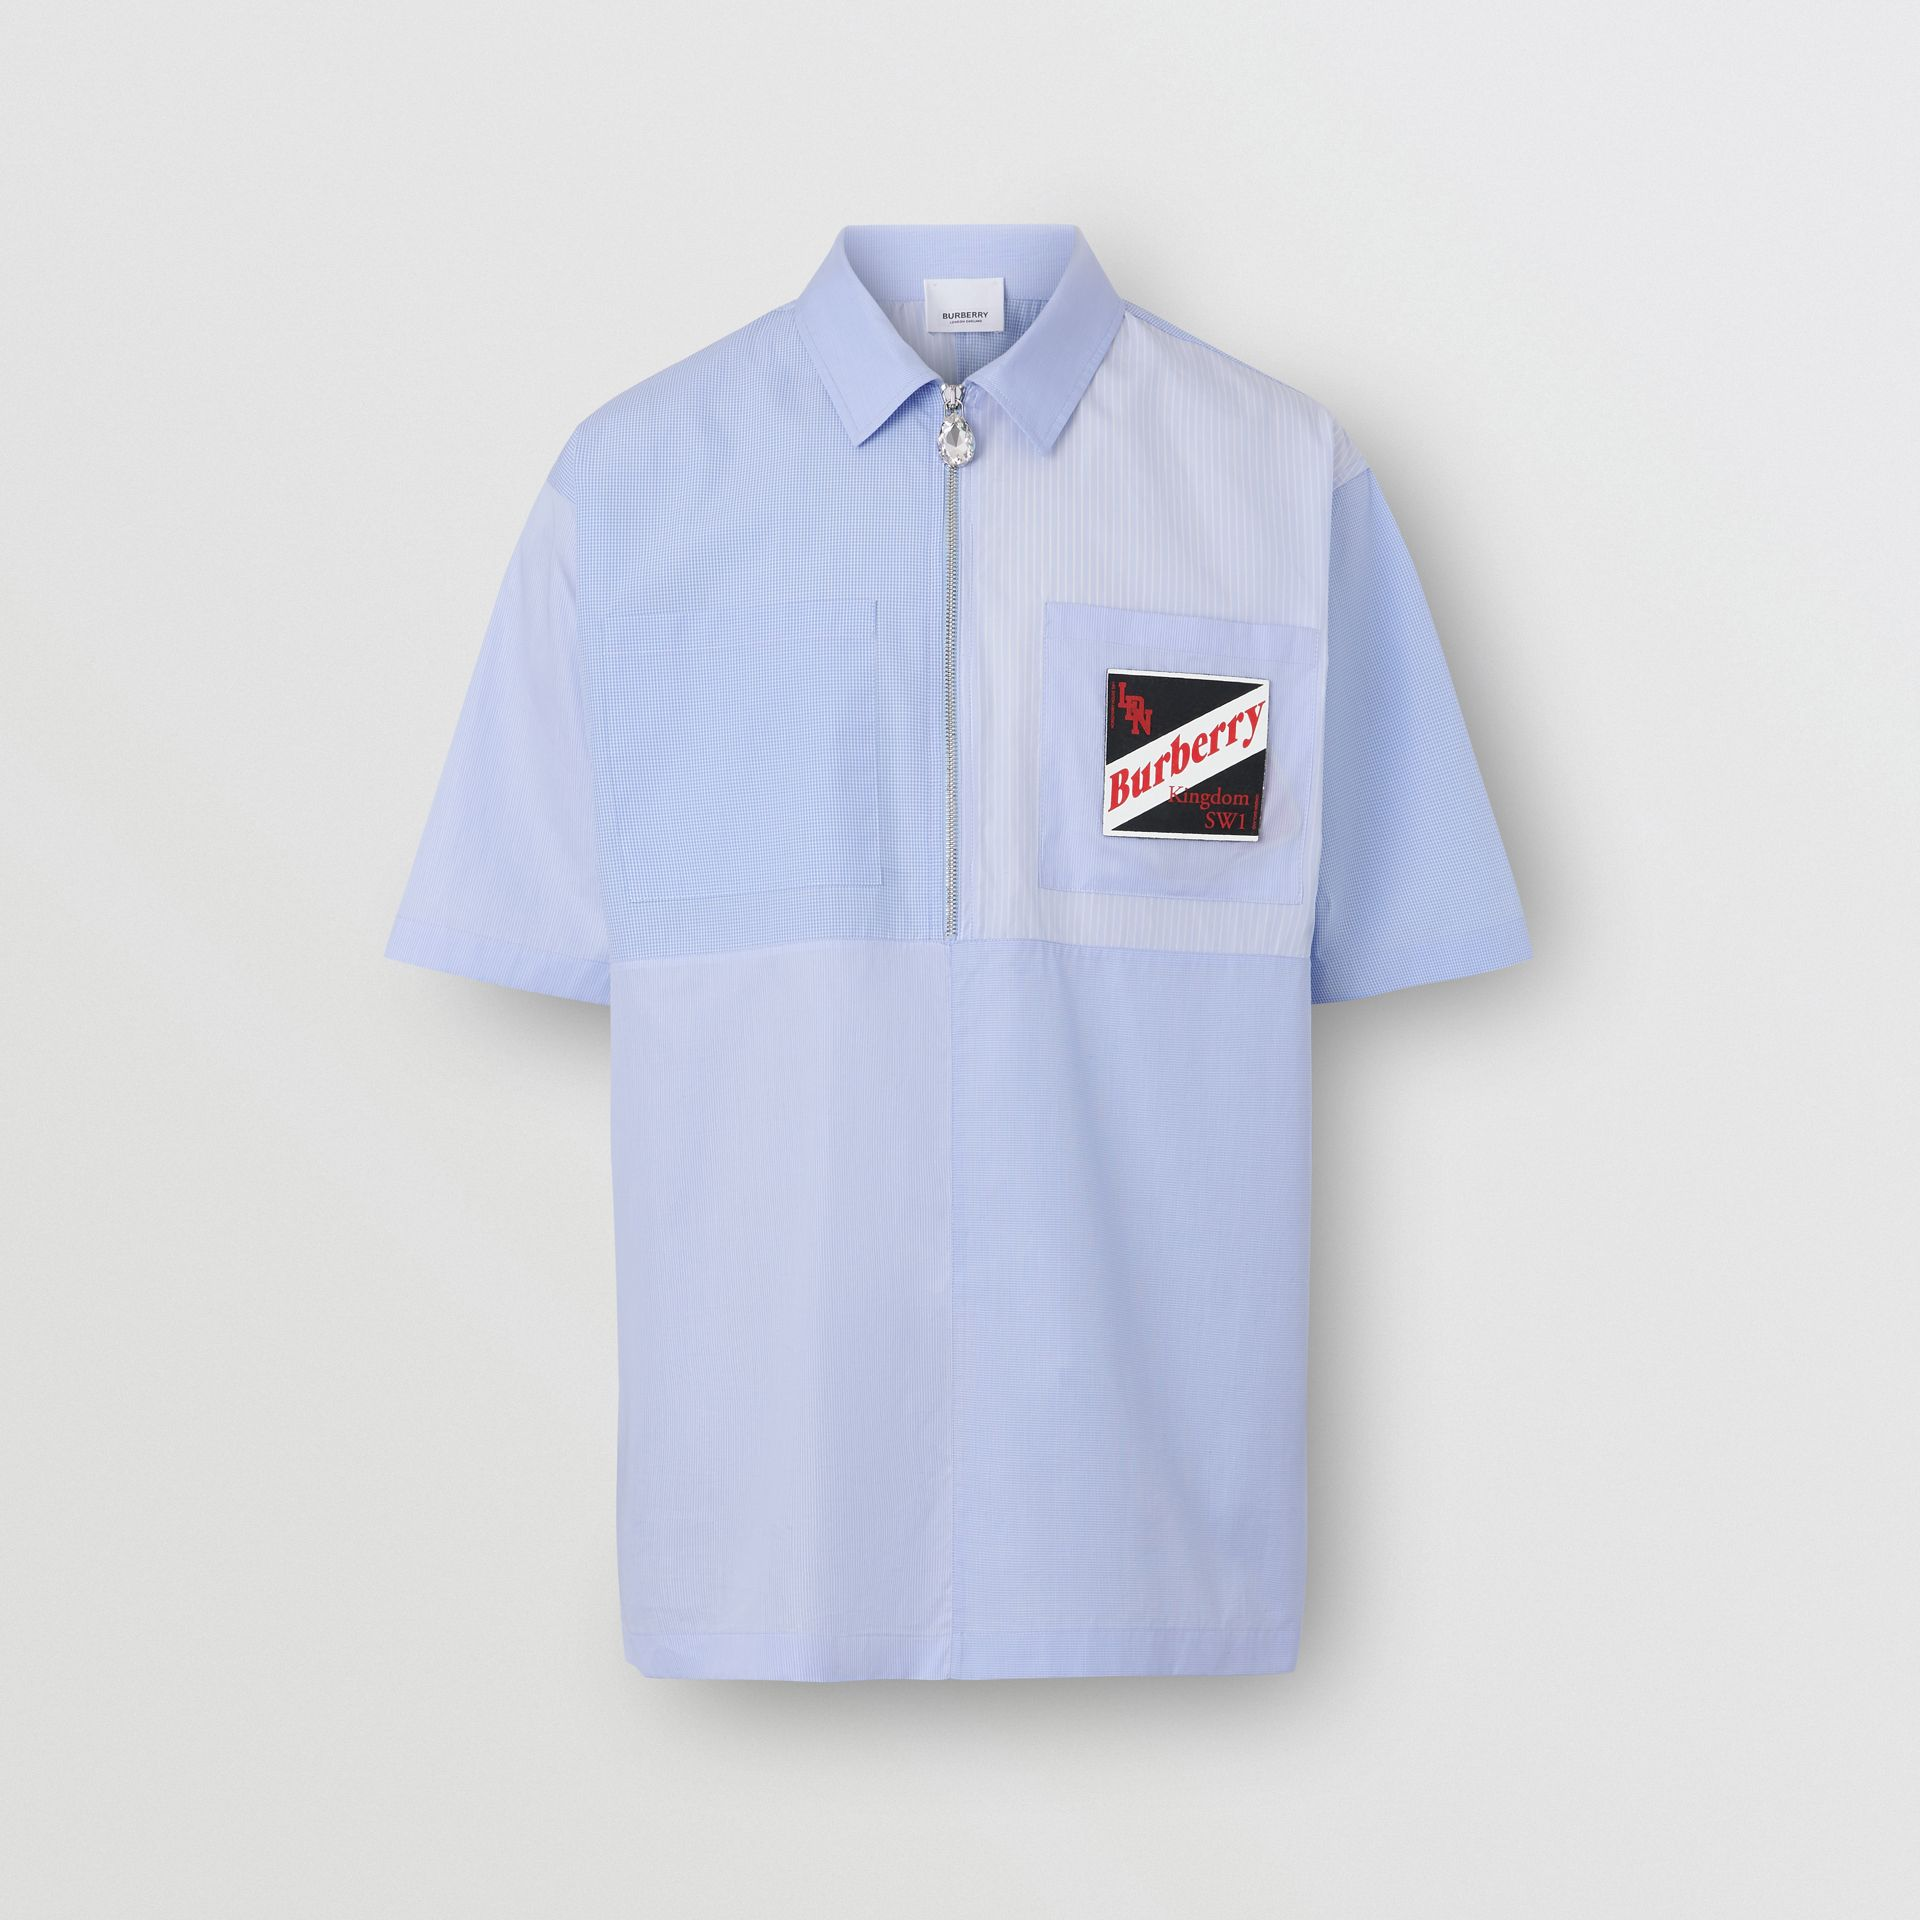 Short-sleeve Logo Graphic Patchwork Cotton Shirt in Pale Blue - Men | Burberry Hong Kong S.A.R - gallery image 3